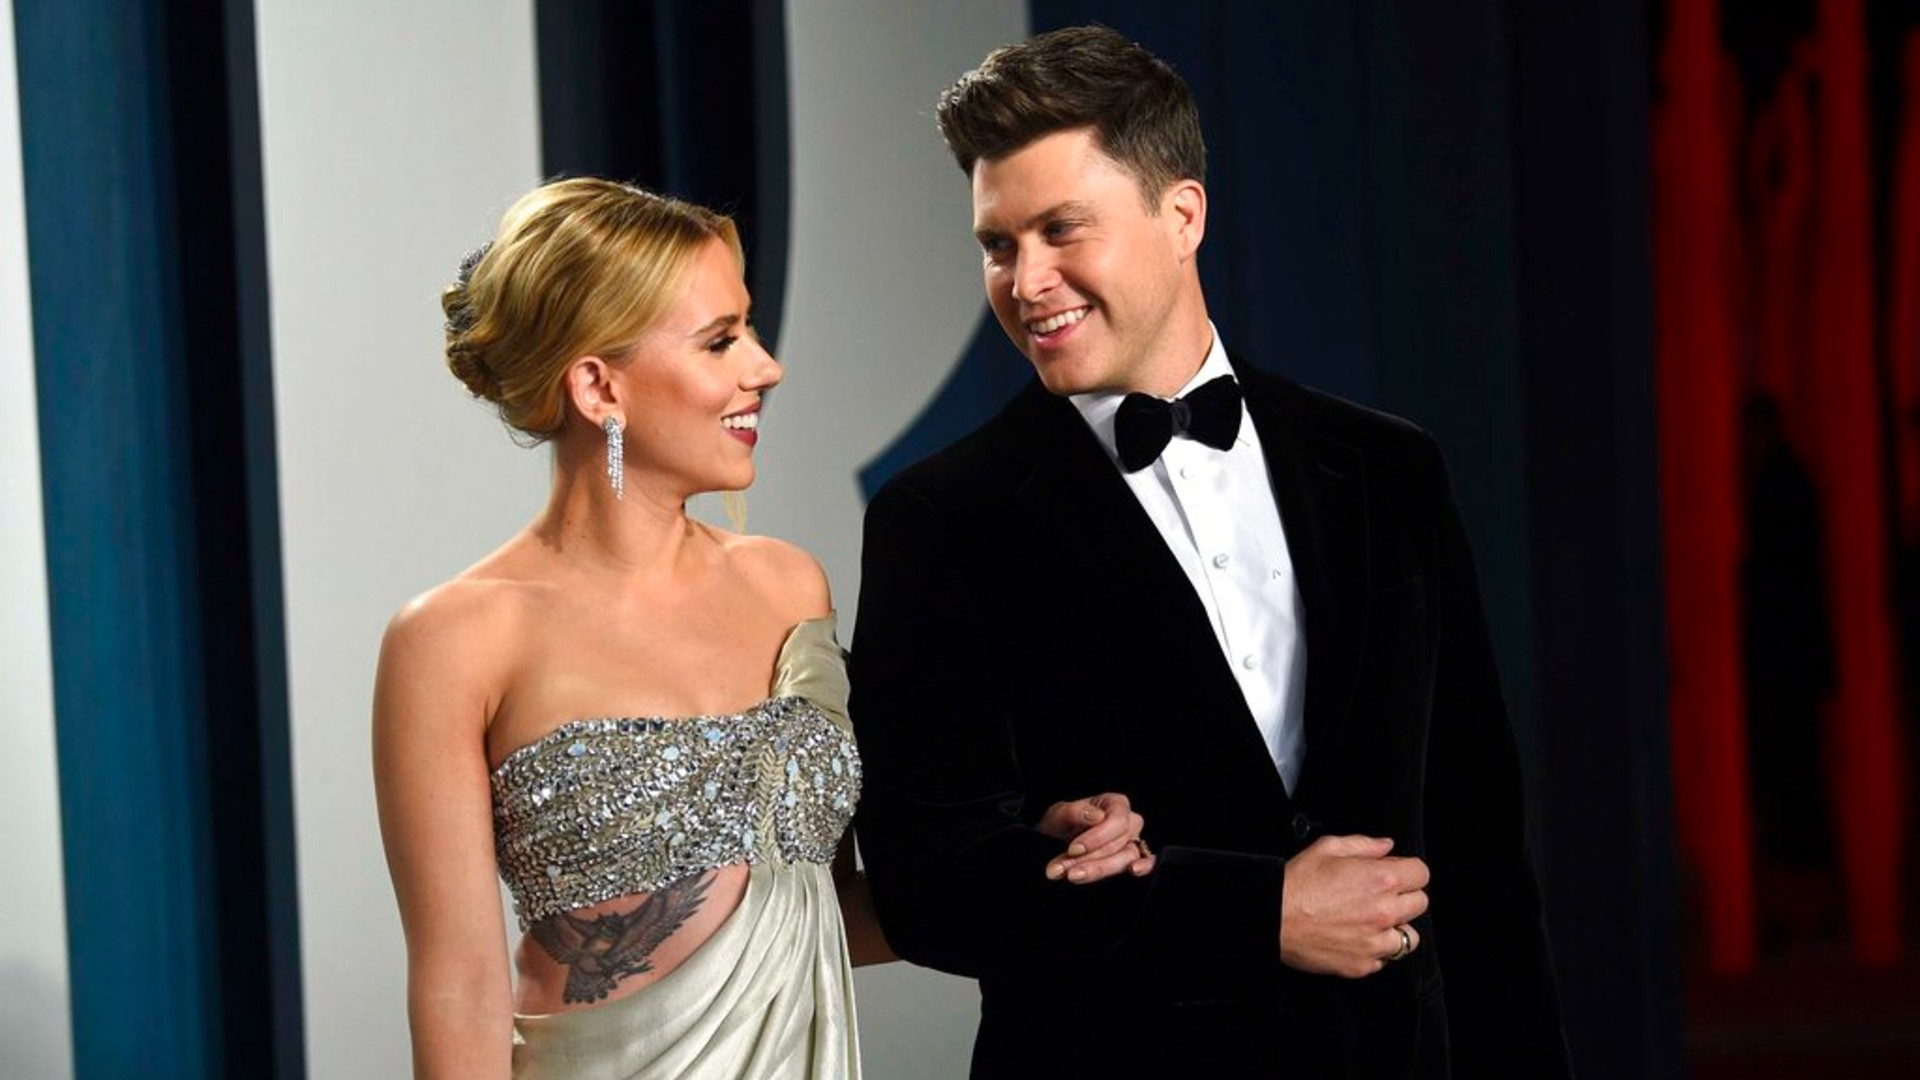 In this Feb. 9, 2020 file photo, Scarlett Johansson, left, and Colin Jost arrive at the Vanity Fair Oscar Party in Beverly Hills, Calif. (Photo by Evan Agostini/Invision/AP, File)